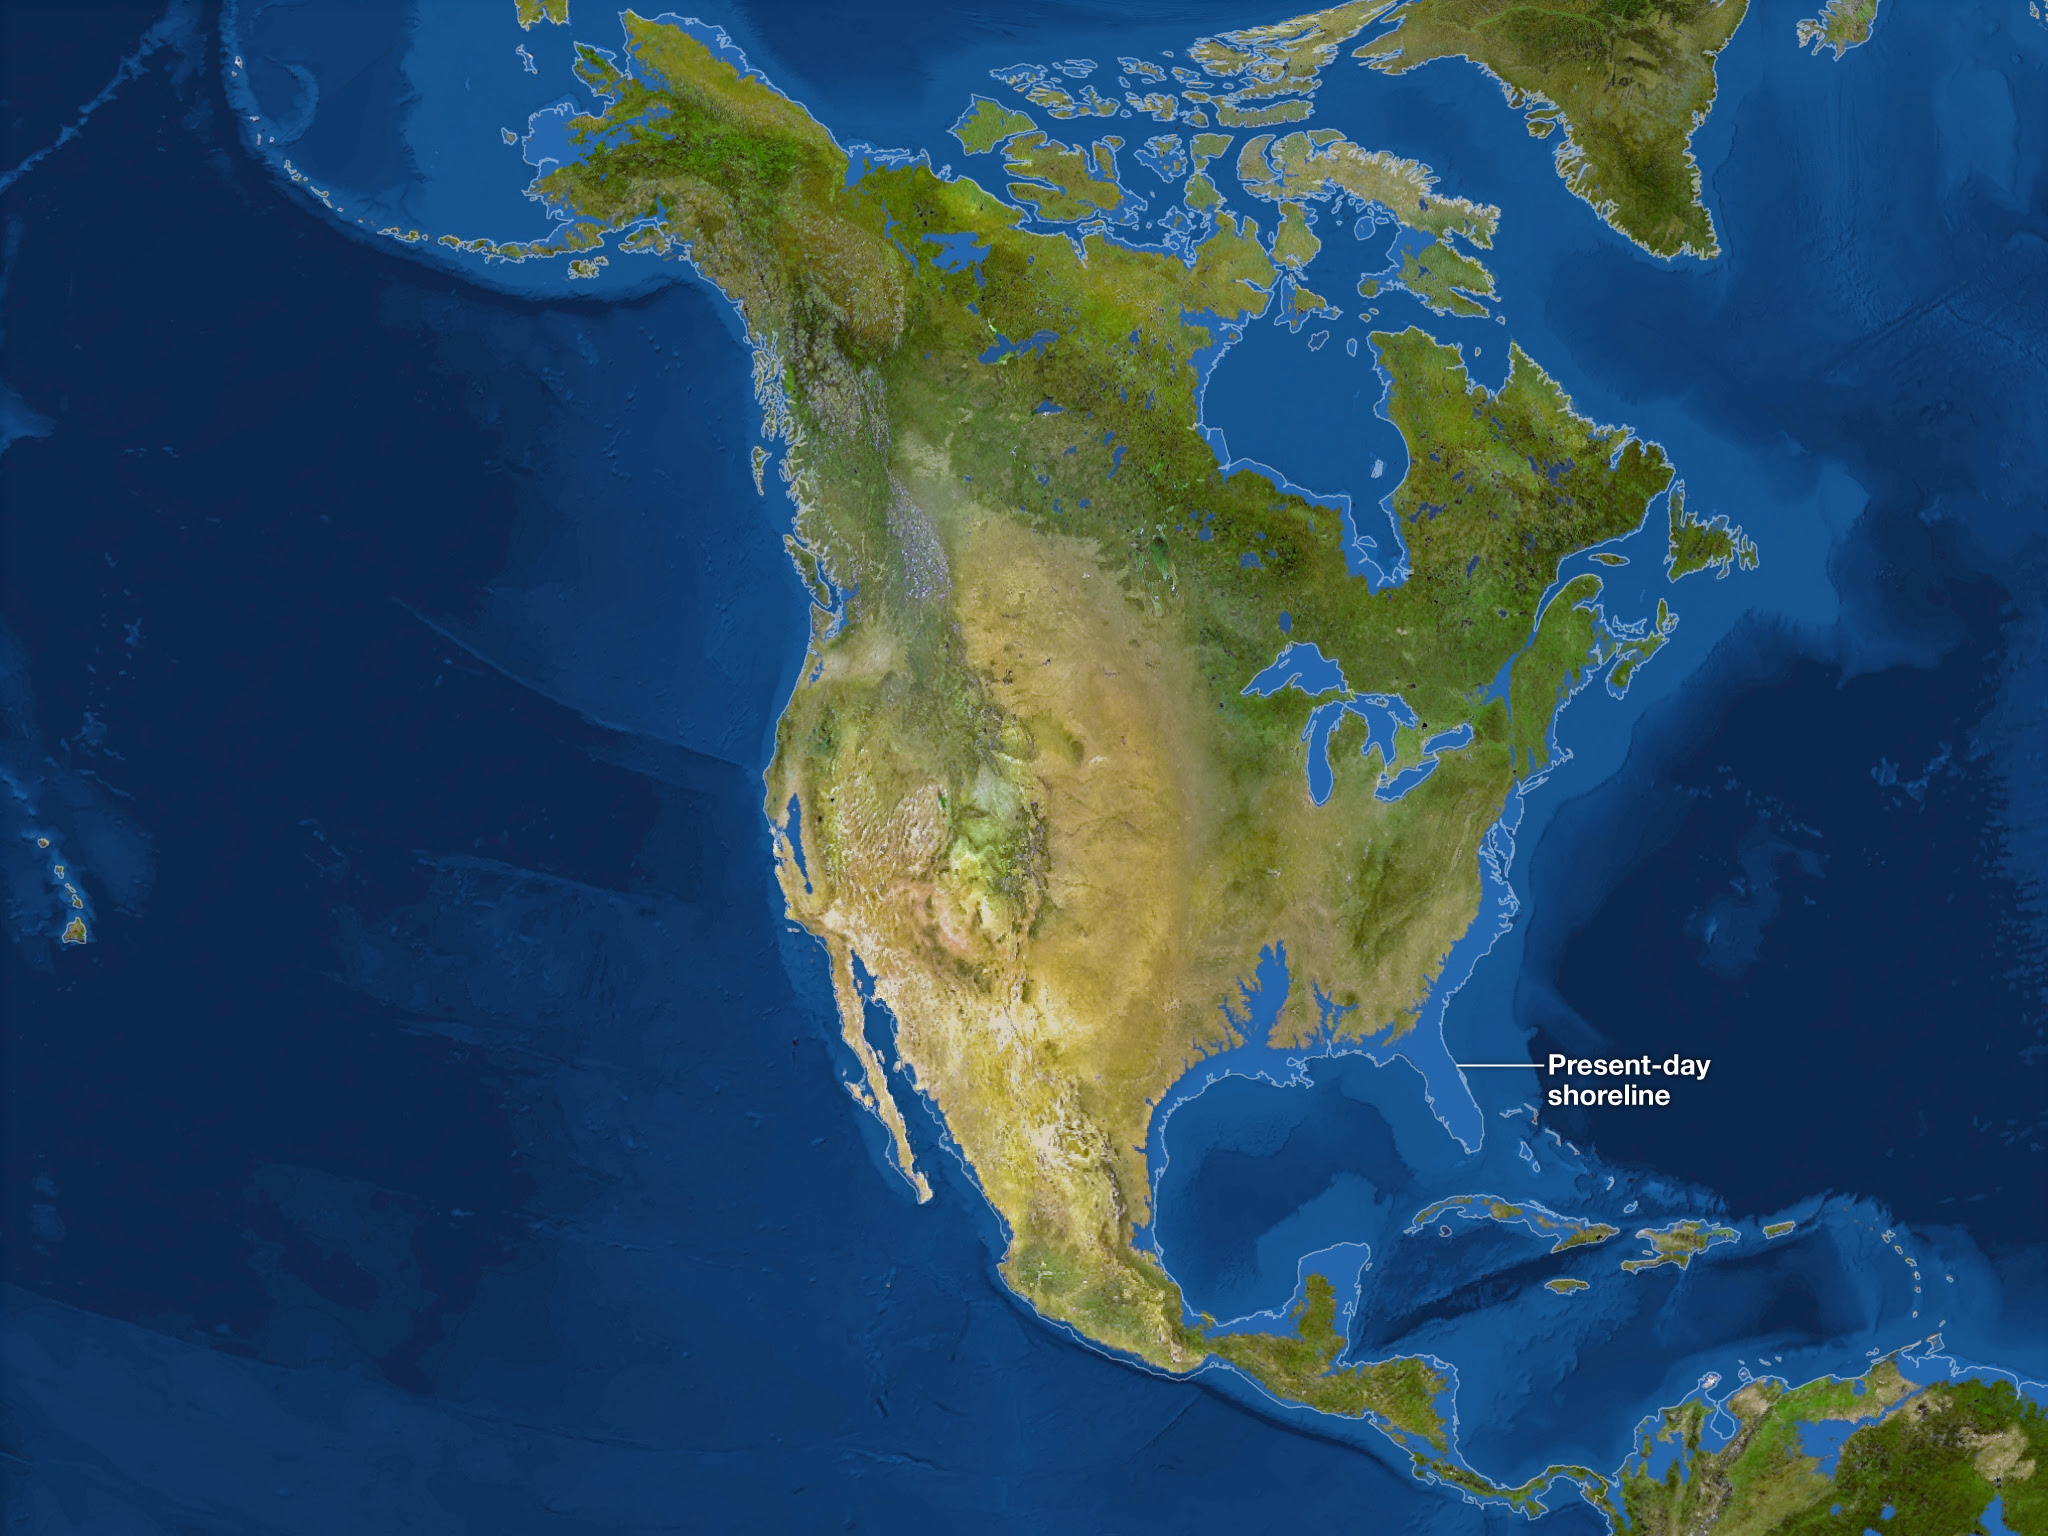 Us Map Without Florida.Map Of World After Ice Caps Melt Map Of Us Western States